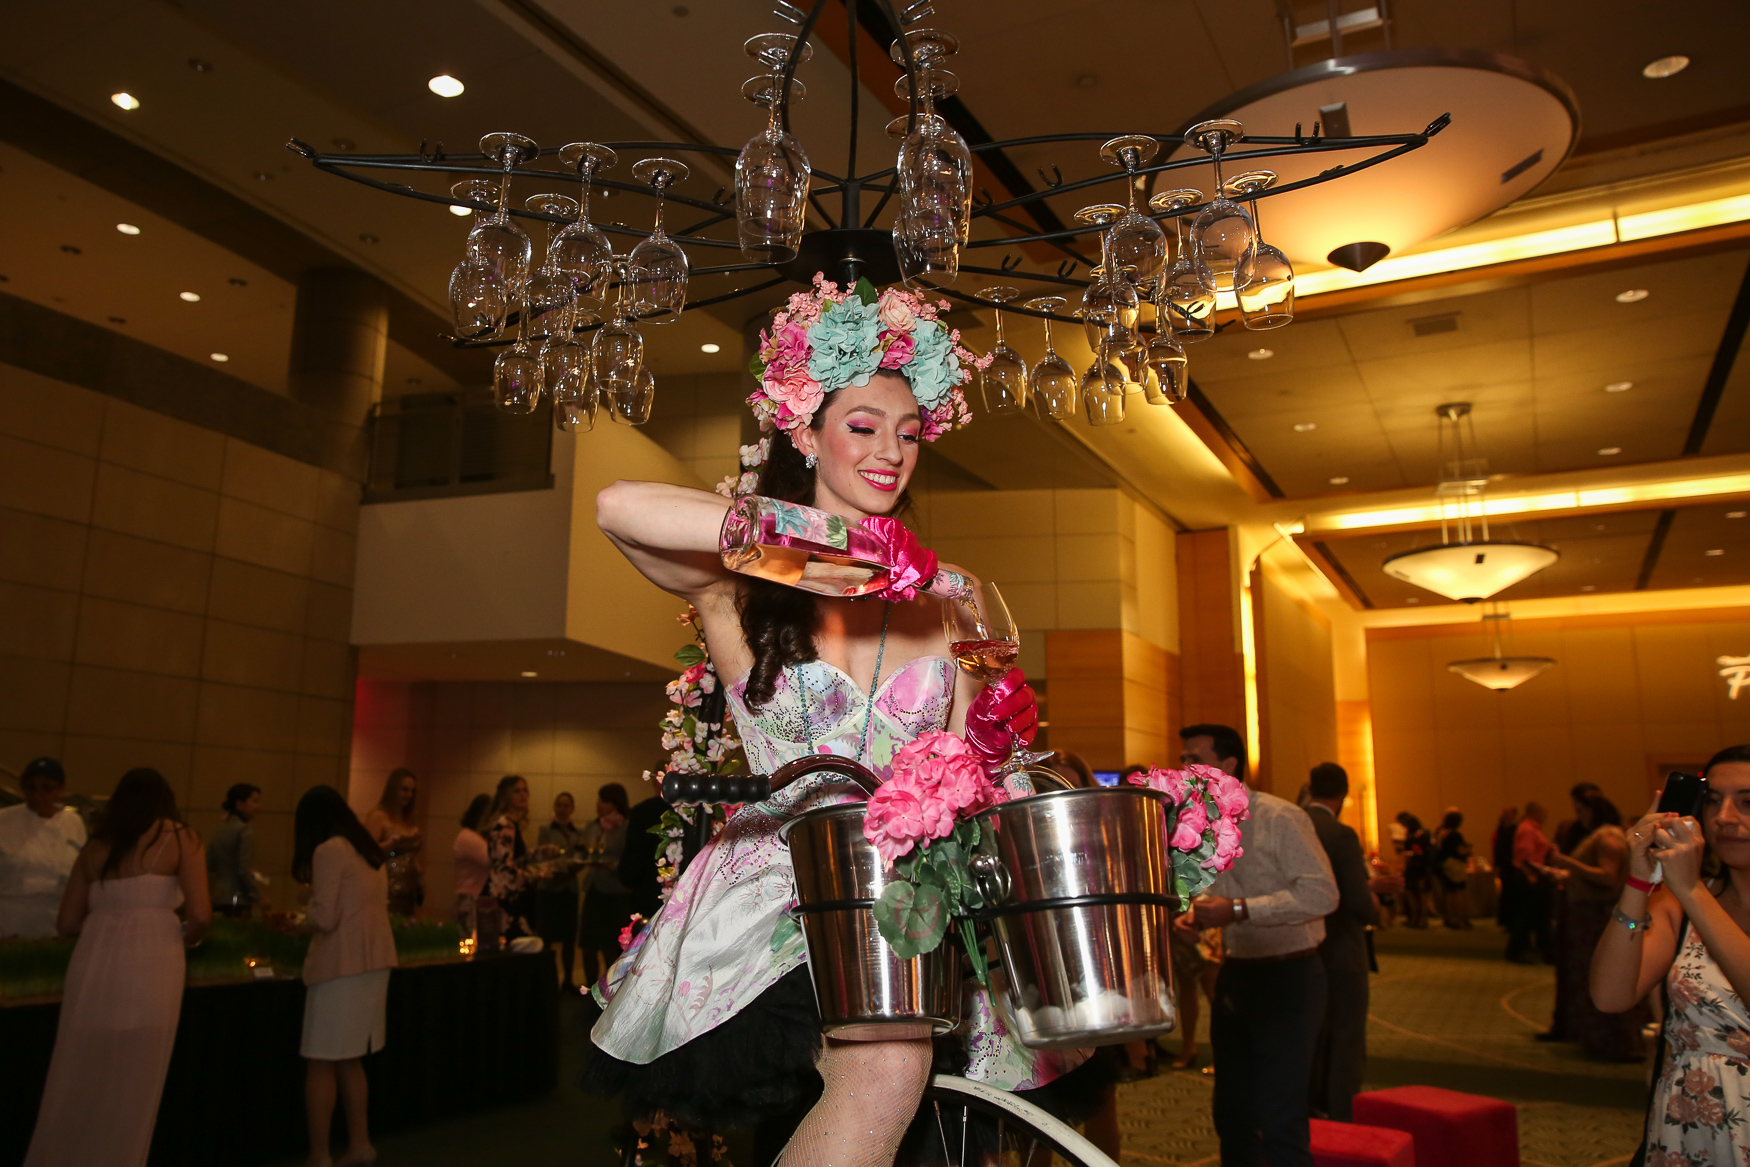 Hundreds of people celebrated the start of cherry blossom season with the annual Pink Tie Party at the Ronald Reagan Building on March 22. Guests clad in pink were treated to bites from local restaurants, live music, artistic performances and a visit from a woman on a large tricycle pouring rosé.{ } (Amanda Andrade-Rhoades/DC Refined)